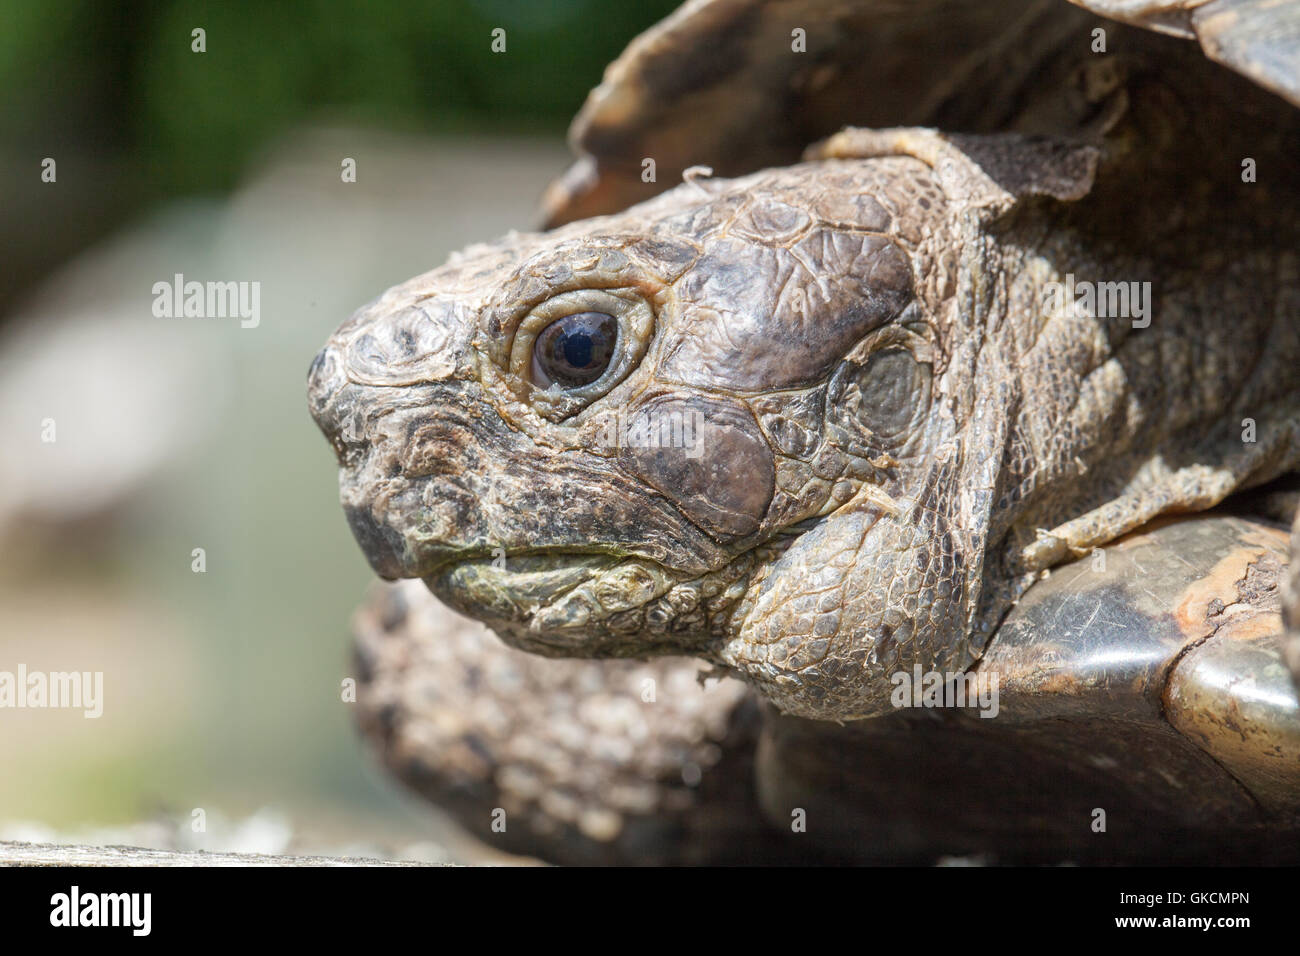 Mediterranean Spur-thighed Tortoise (Testudo  graeca). Tumour growth on side of lower jaw. Stock Photo